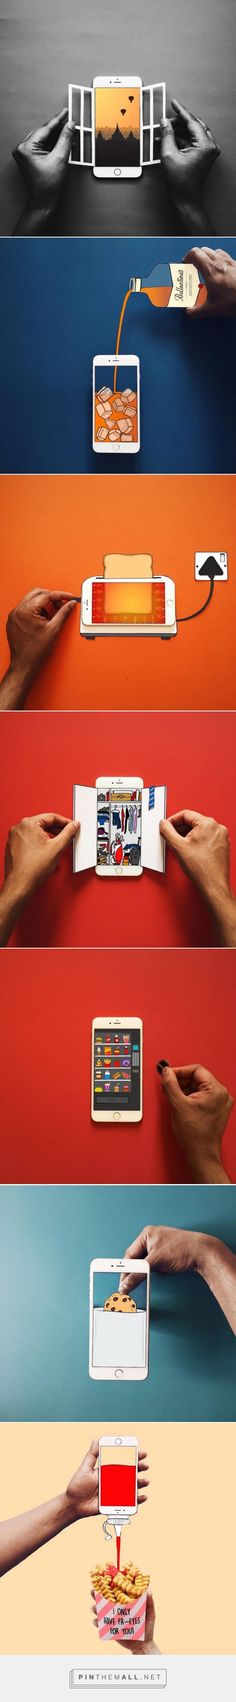 Creative Compositions Using an iPhone and Paper.                                                                                                                                                                                 More